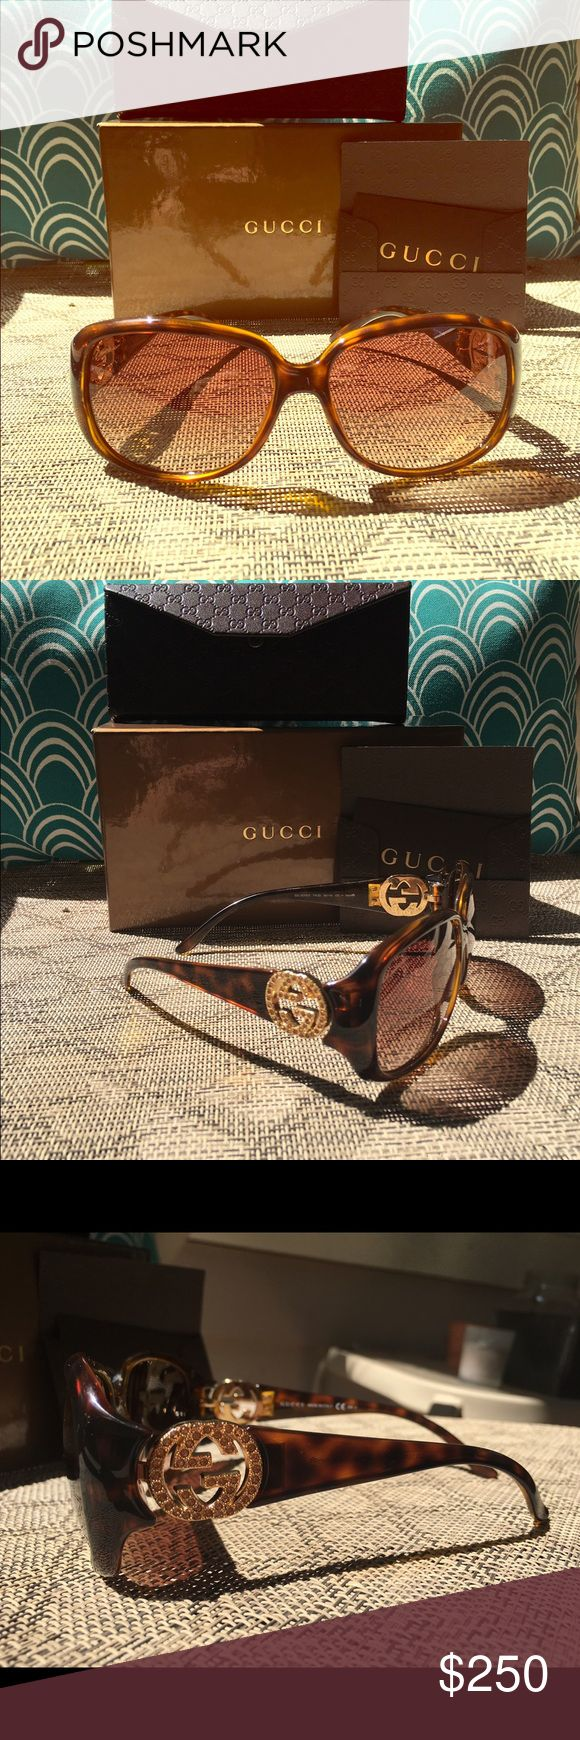 Gorgeous Gucci tortoiseshell women's sunglasses New sunglasses, never worn, with case and box from purchase. Amber crystal accent stones. Gucci Accessories Sunglasses